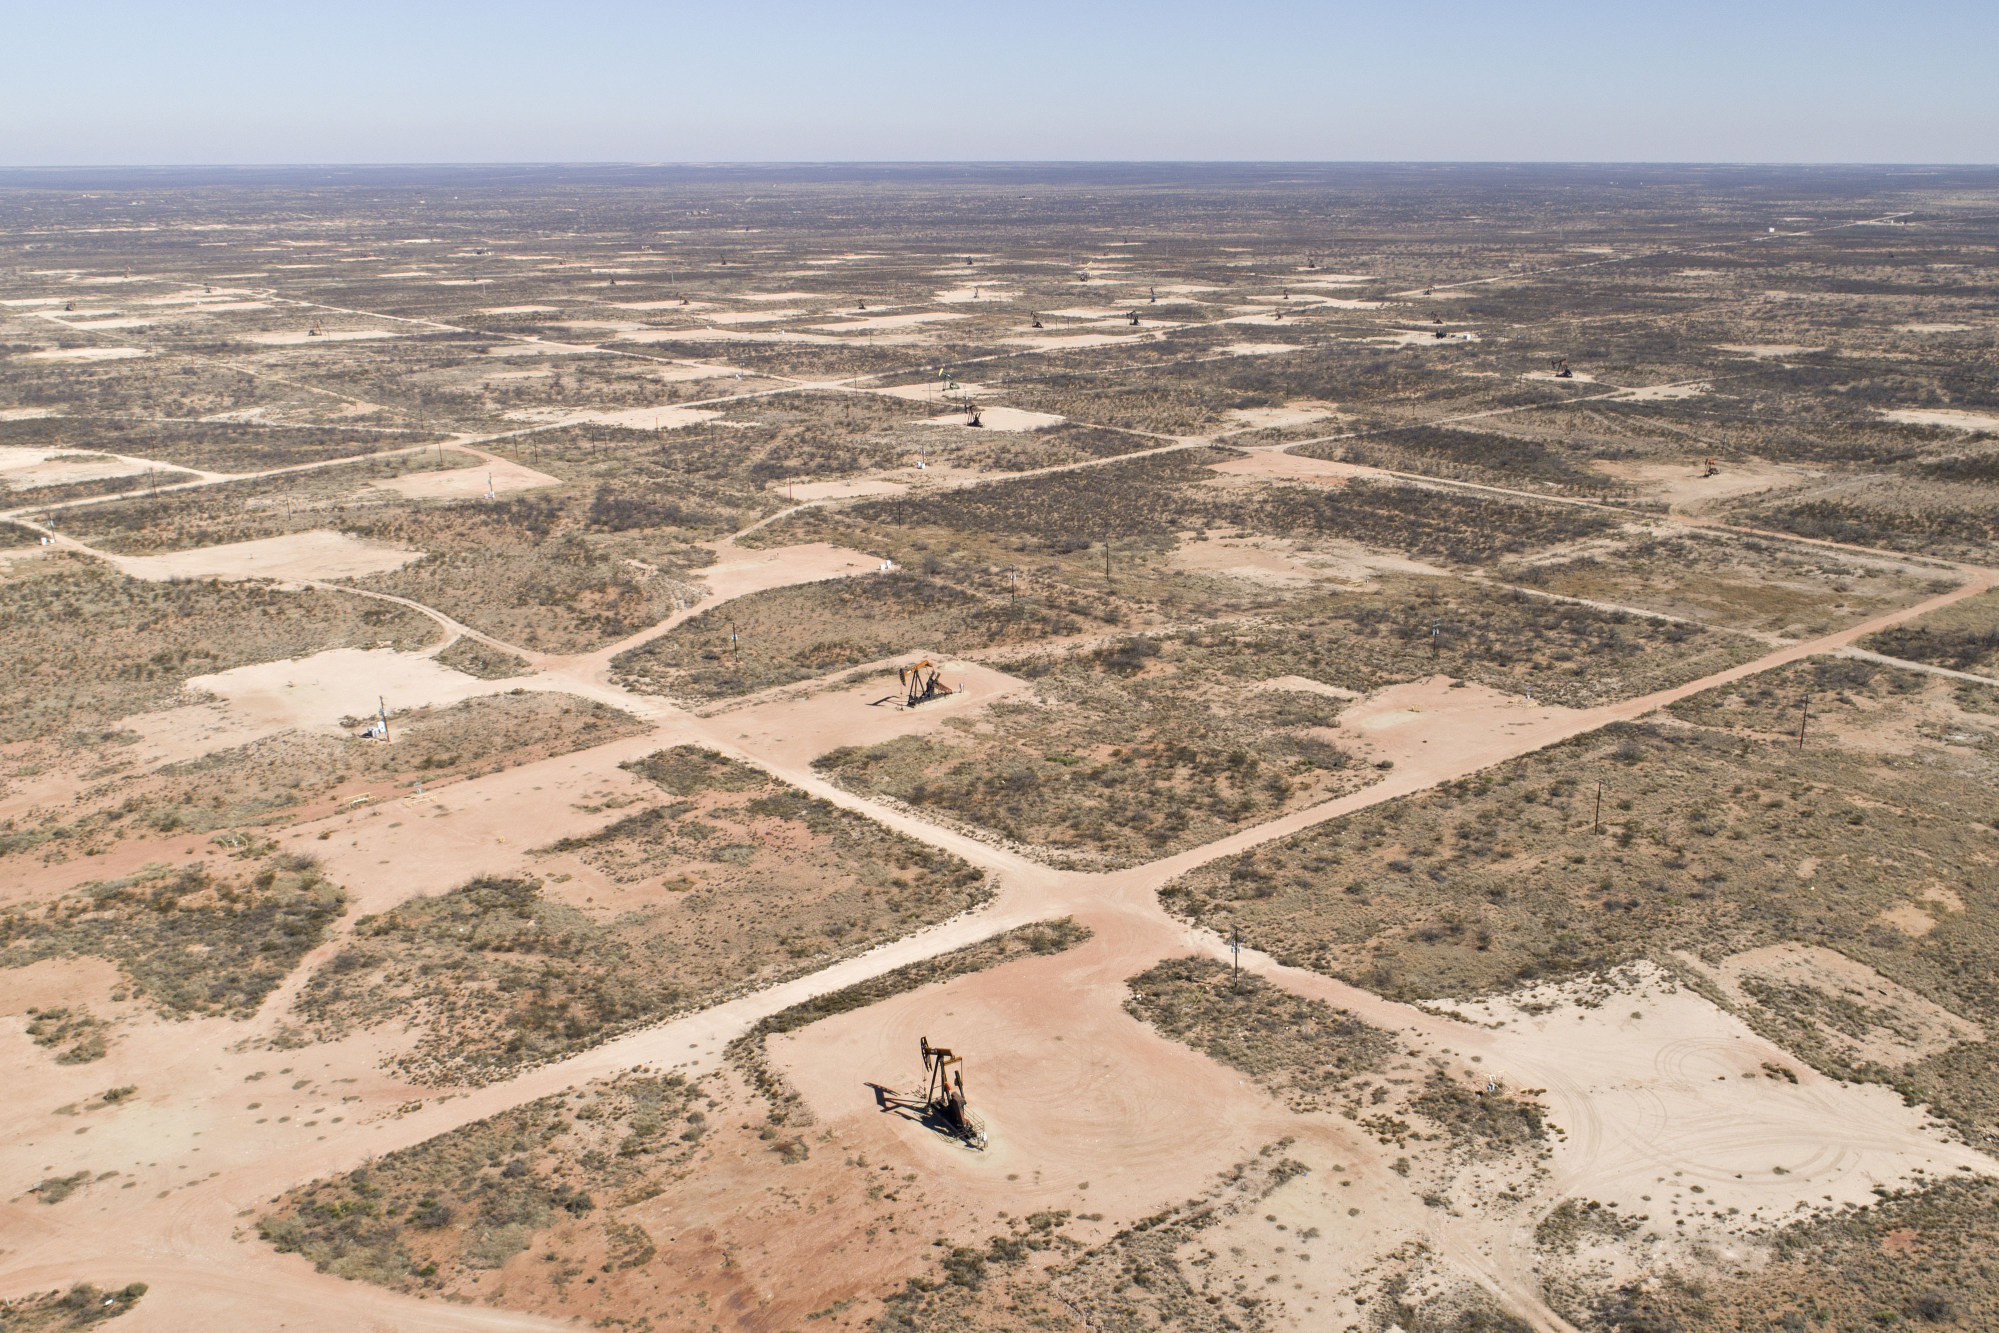 Pumpjacks operate on oil wells in the Permian Basin. Photographer: Daniel Acker/Bloomberg